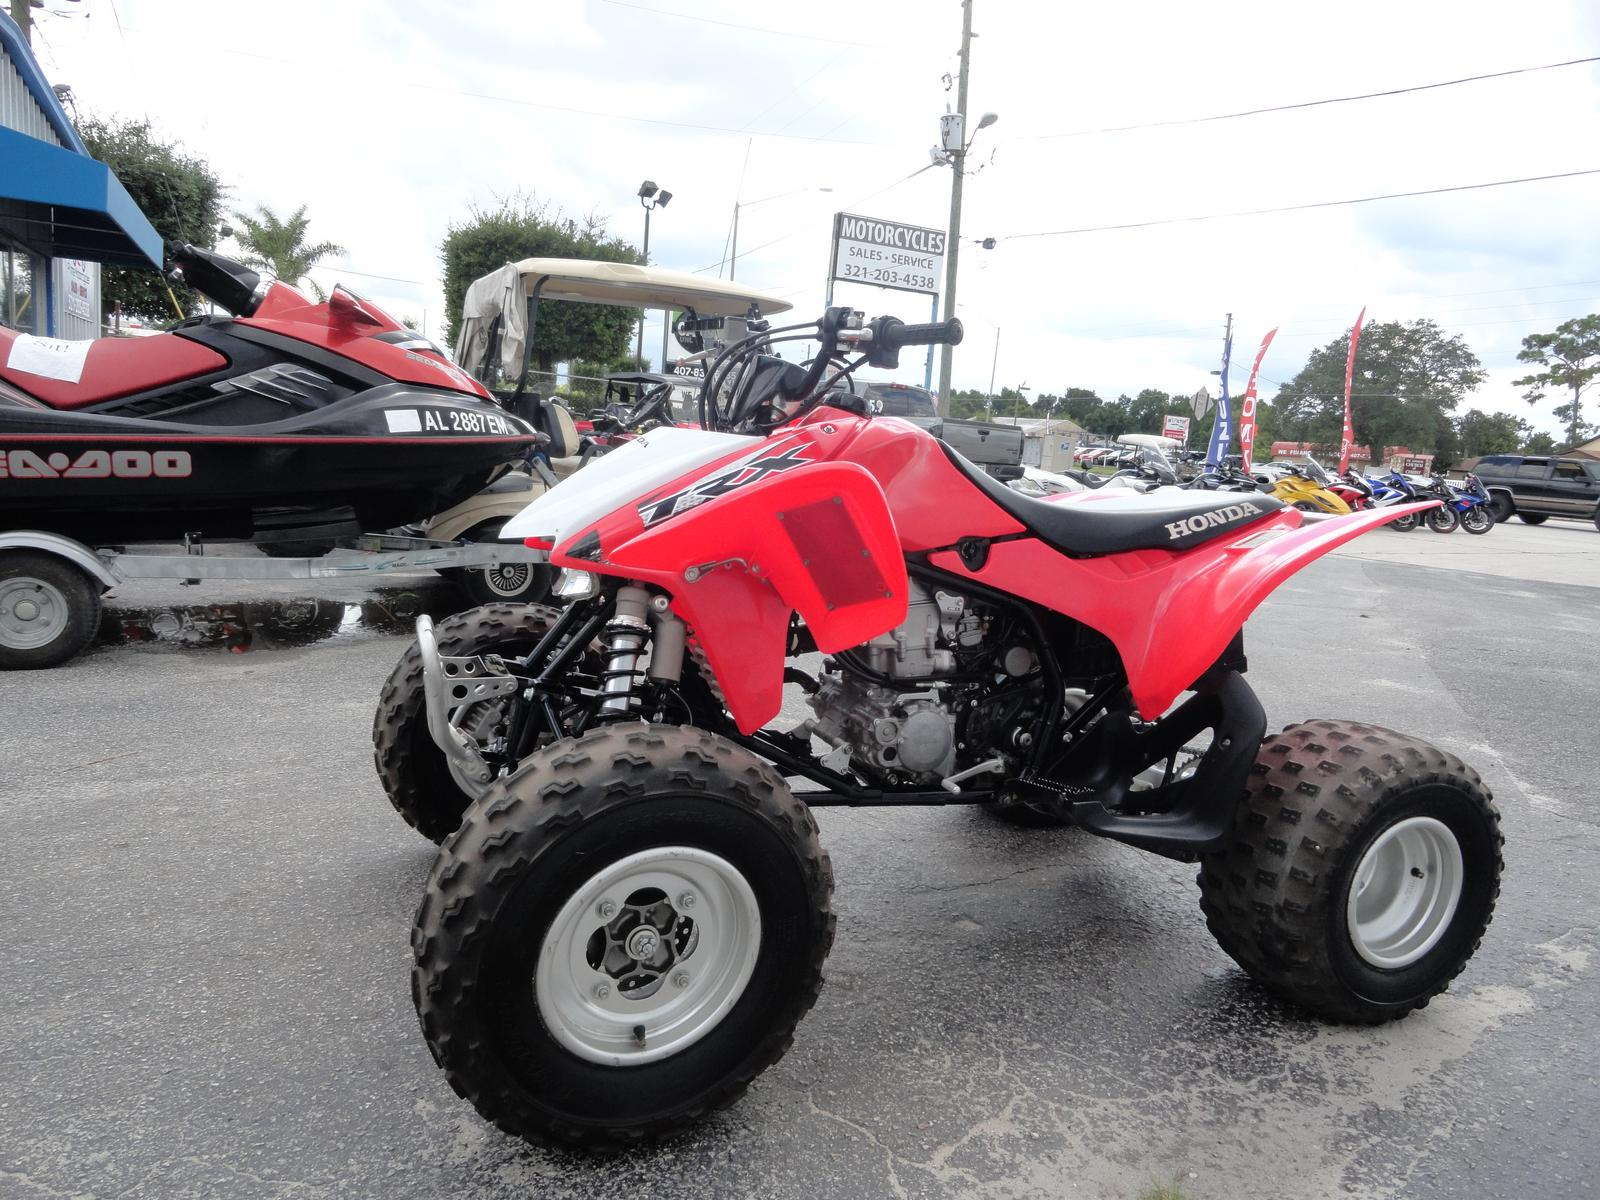 Trx450r Top Speed